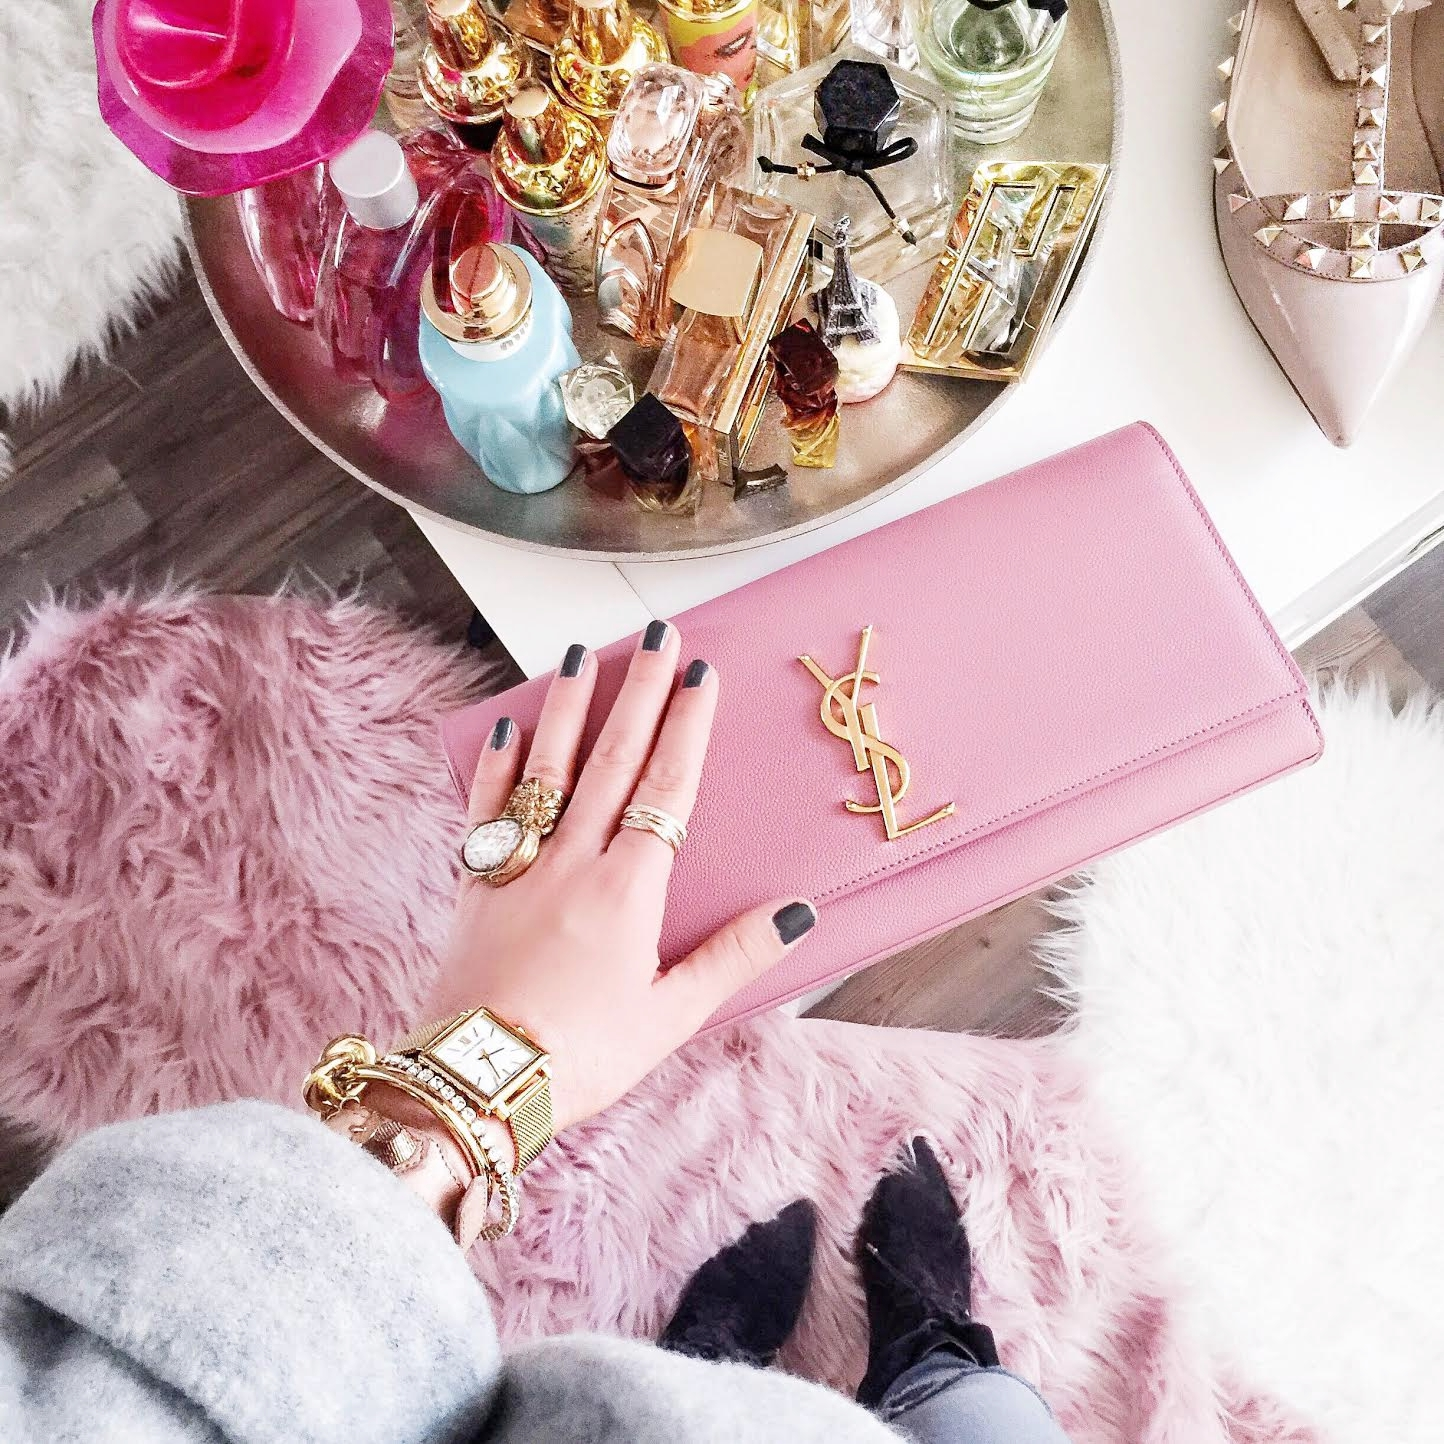 outfit-details-ysl-clutch-pink-fashionhippieloves-closet